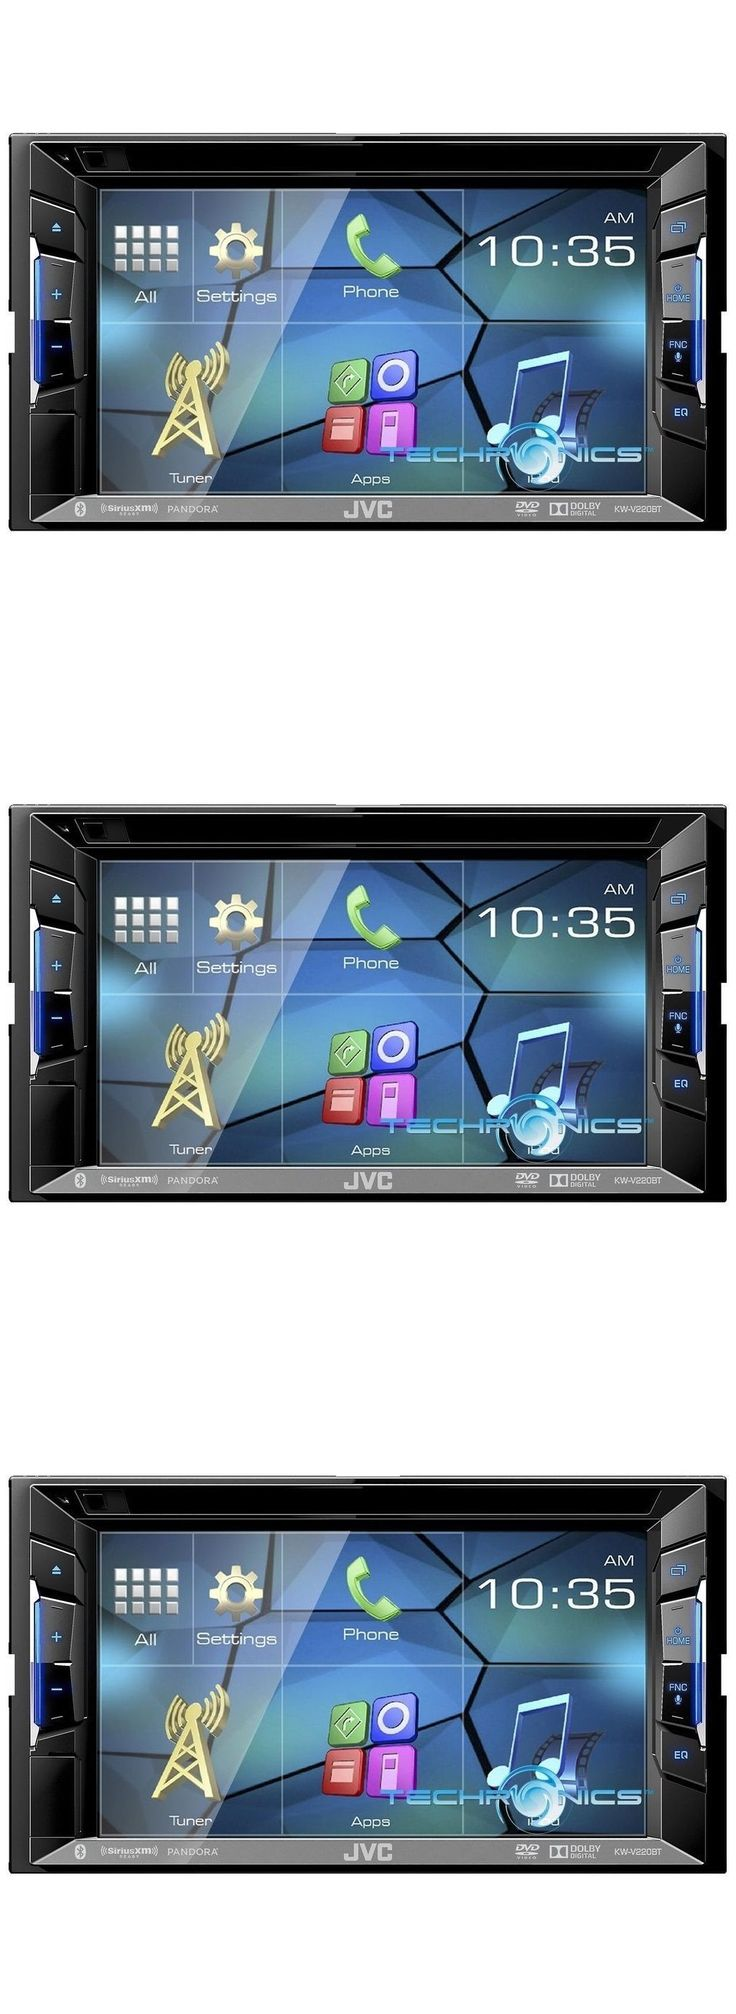 Vehicle Electronics And GPS: Jvc Kw-V220bt 6.2 Touchscreen Bluetooth Dvd Usb Cd Iphone Car Stereo Player -> BUY IT NOW ONLY: $199.95 on eBay!